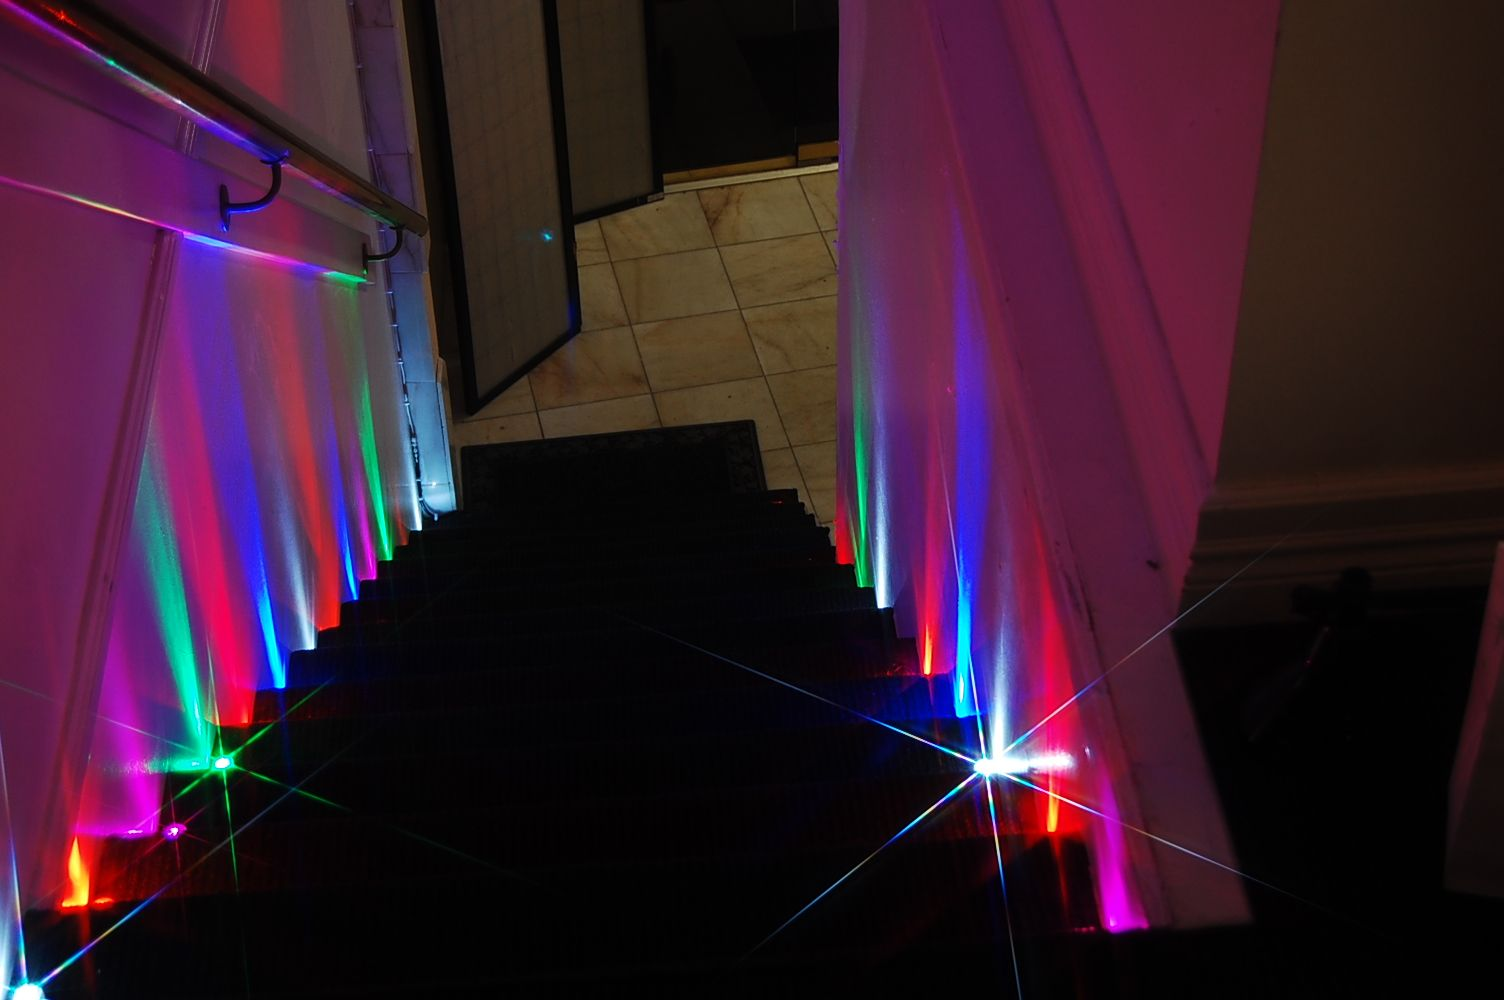 Amazing Party lighting Idea. Party Dots on the stairs. Fun and easy on easy water garden ideas, easy pool landscaping ideas, easy kitchen ideas, easy tips, easy outdoor lighting, easy awning ideas, easy cleaning ideas, easy insulation ideas, easy garden decor ideas, easy color ideas, easy bathroom ideas, easy rope light ideas, easy food ideas, easy shed ideas, easy travel ideas, easy jewelry ideas, easy tile ideas, easy decorating ideas, easy home ideas, easy advertising ideas,